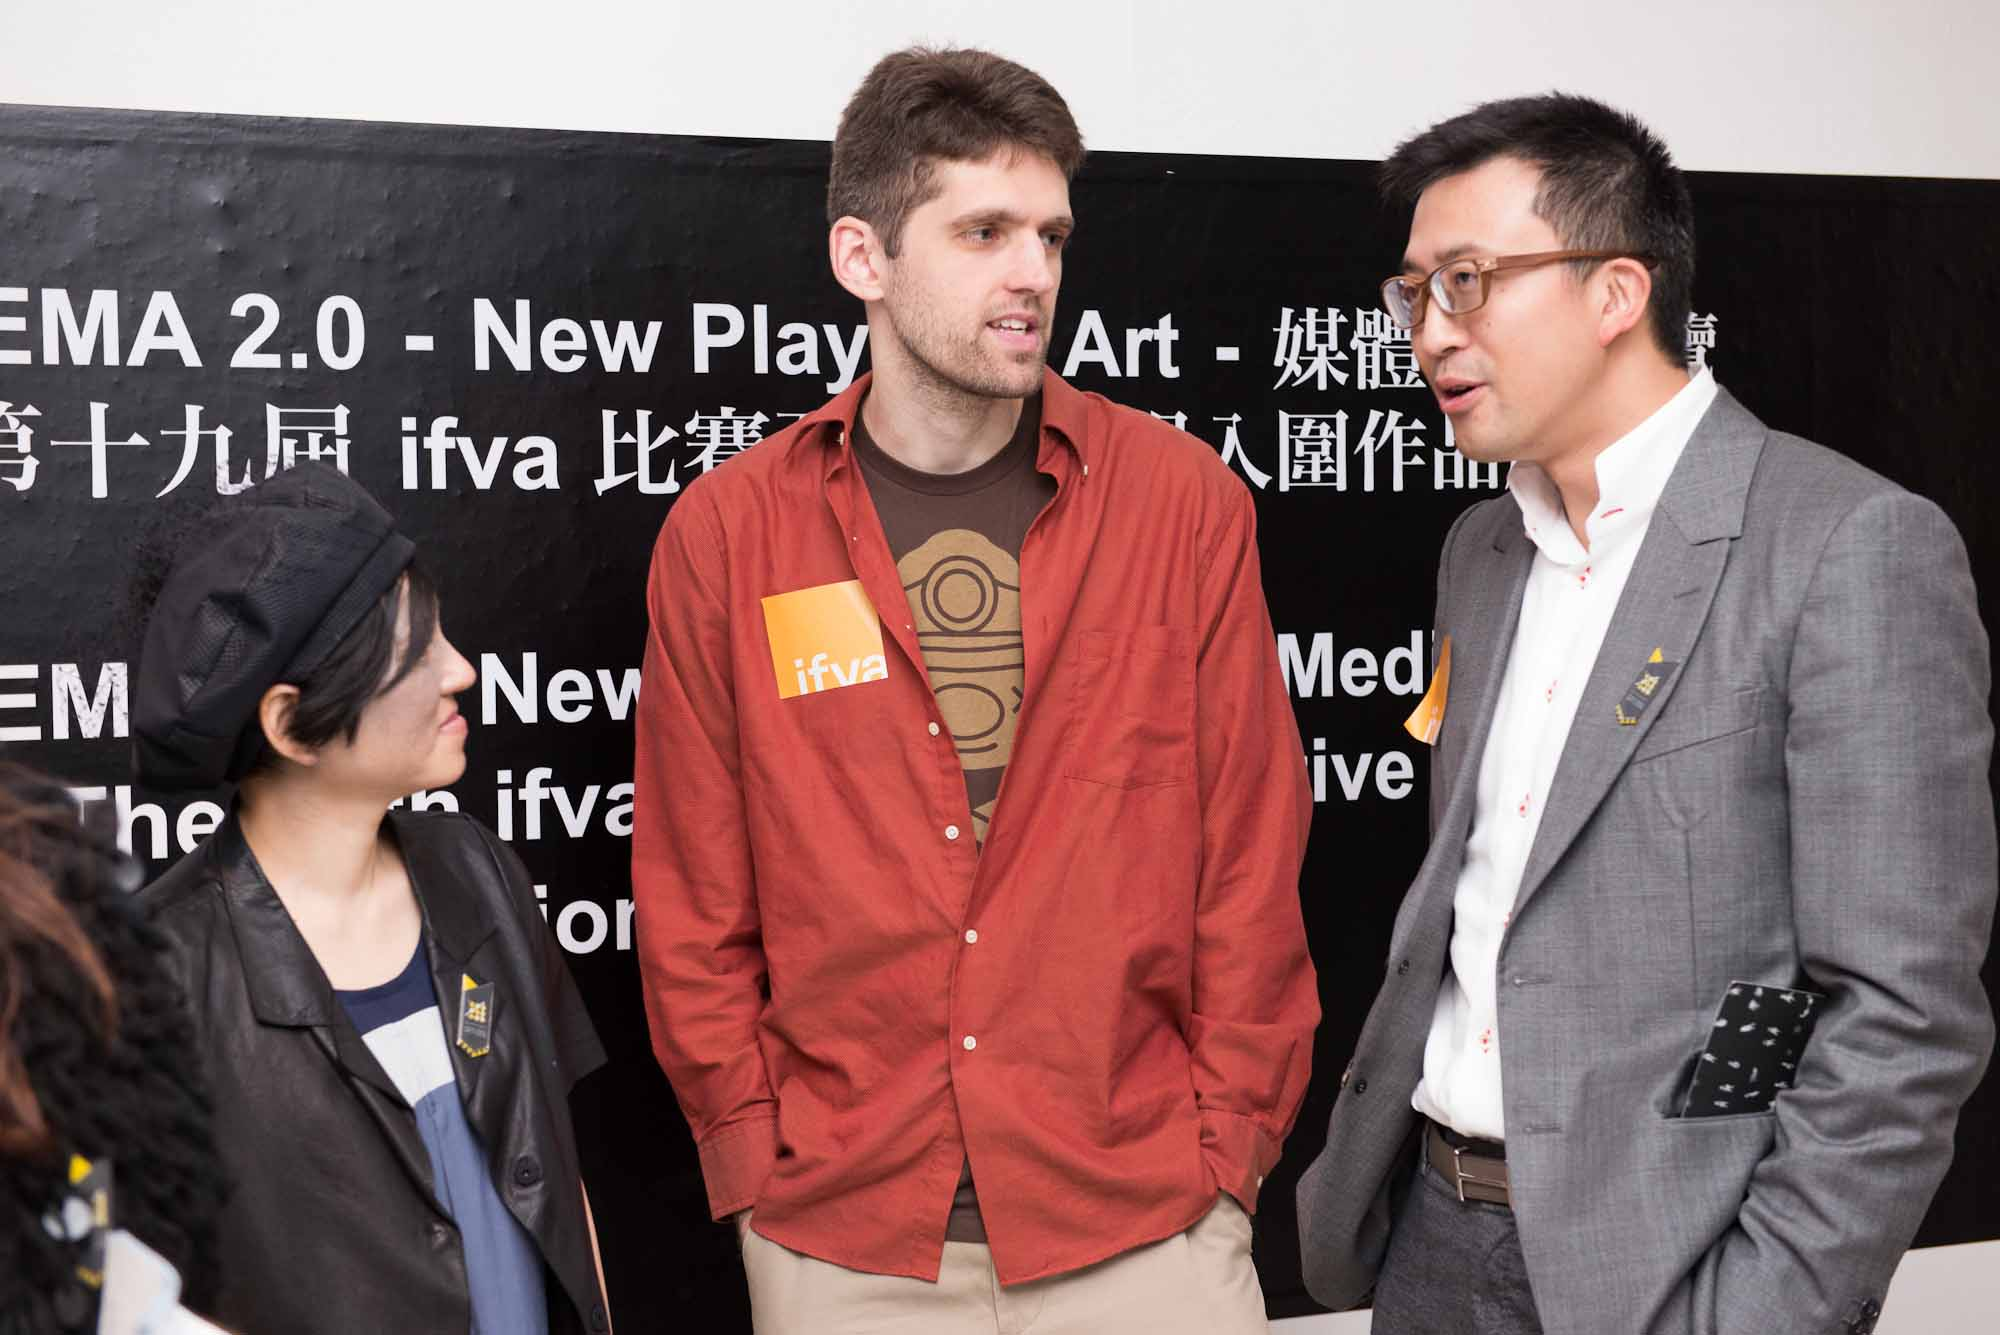 Douglas Wilson interacted with Bryant Lu, Board of Governors of Hong Kong Arts Centre, and Connie Lam , Executive Director of Hong Kong Arts Centre